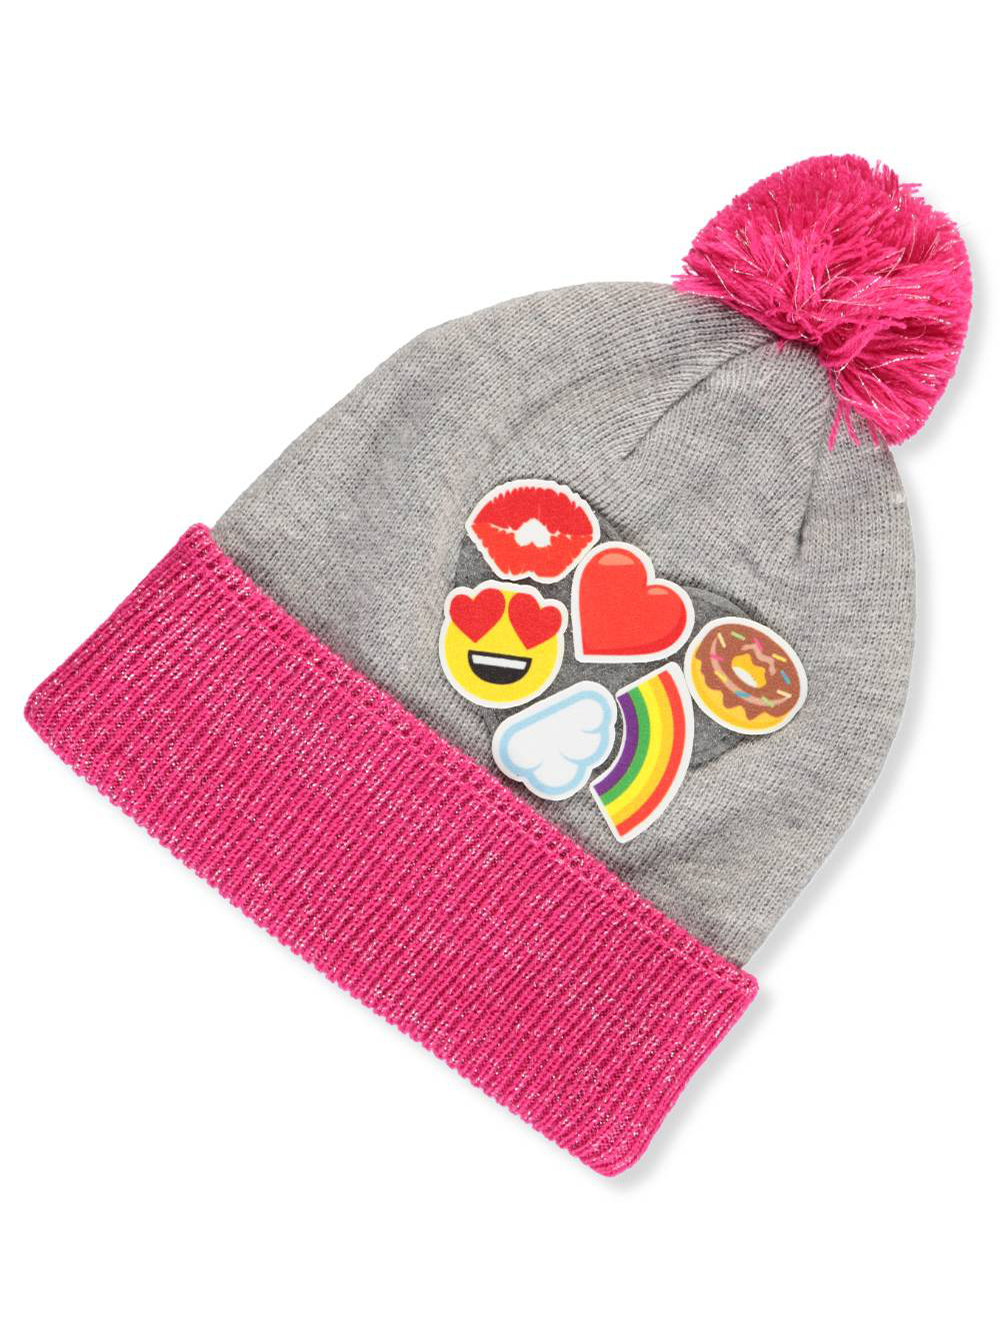 Toddler and Youth Knit Beanie